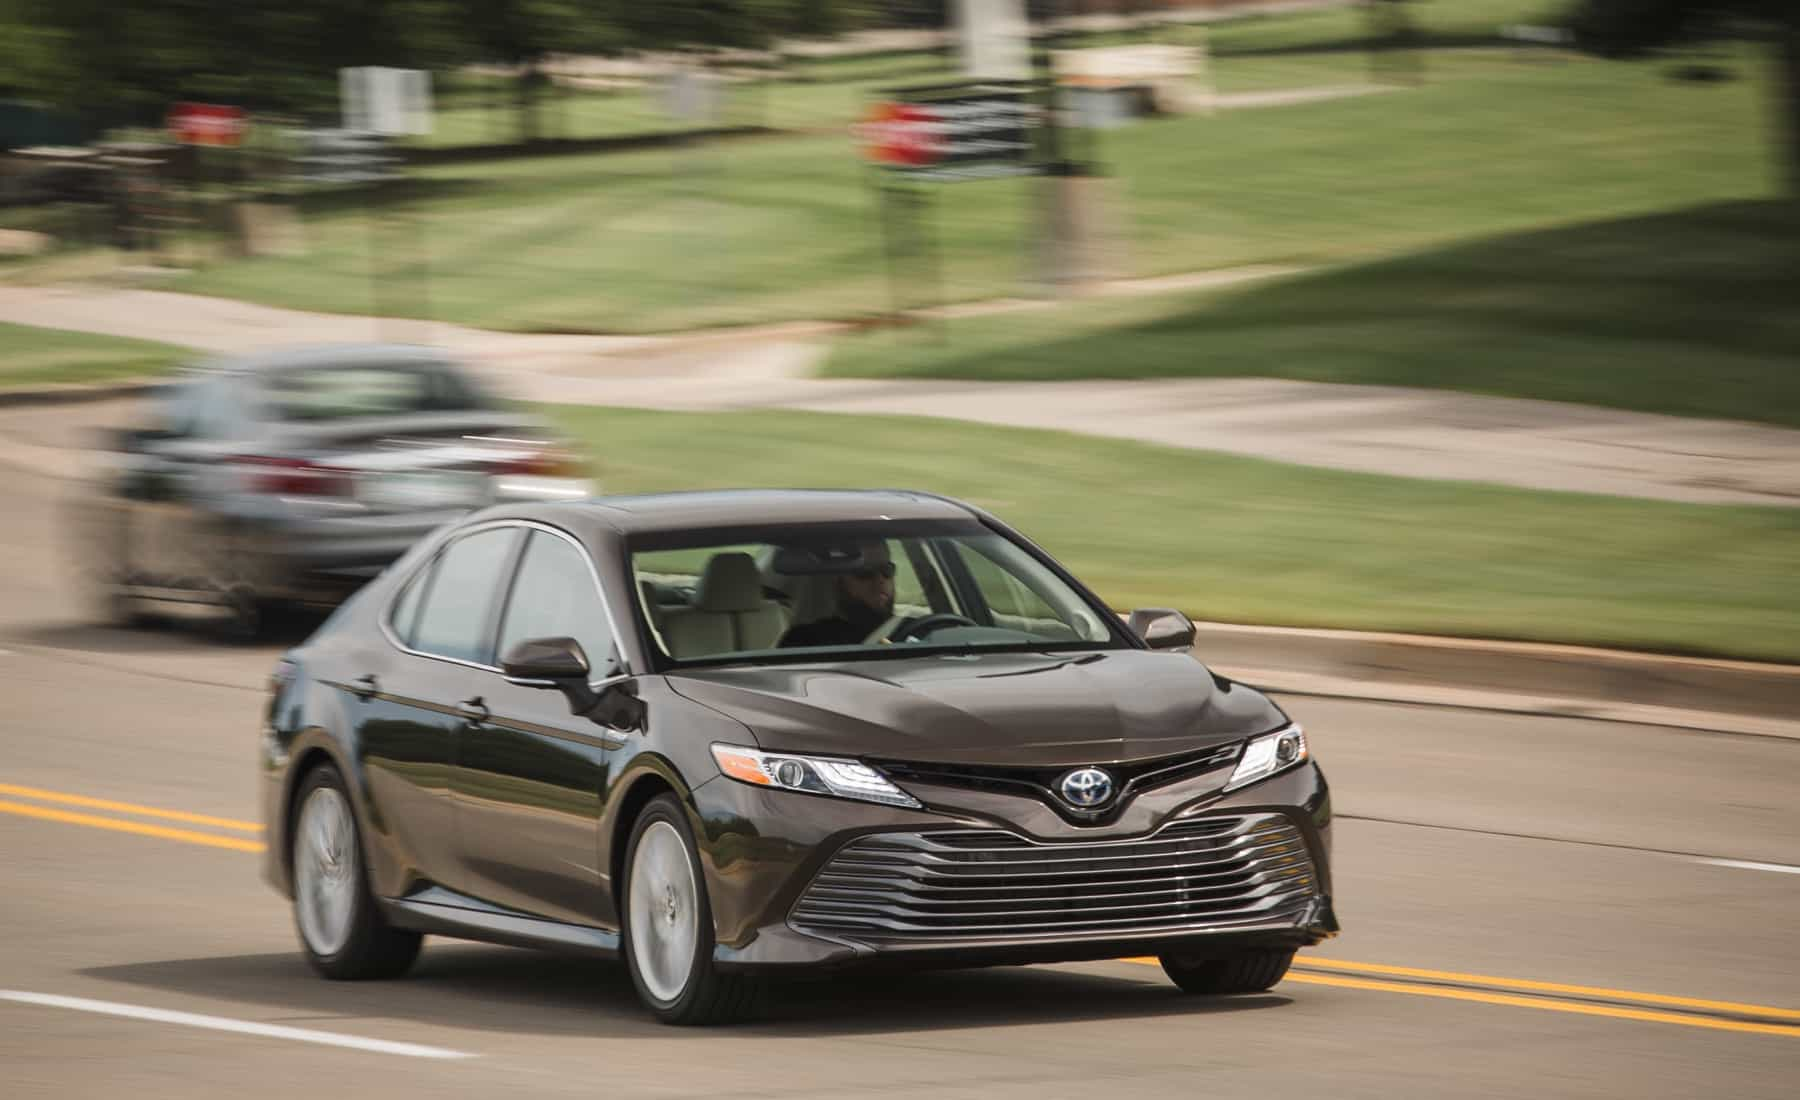 2018 Toyota Camry Hybrid XLE Test Drive Front View (Photo 11 of 41)